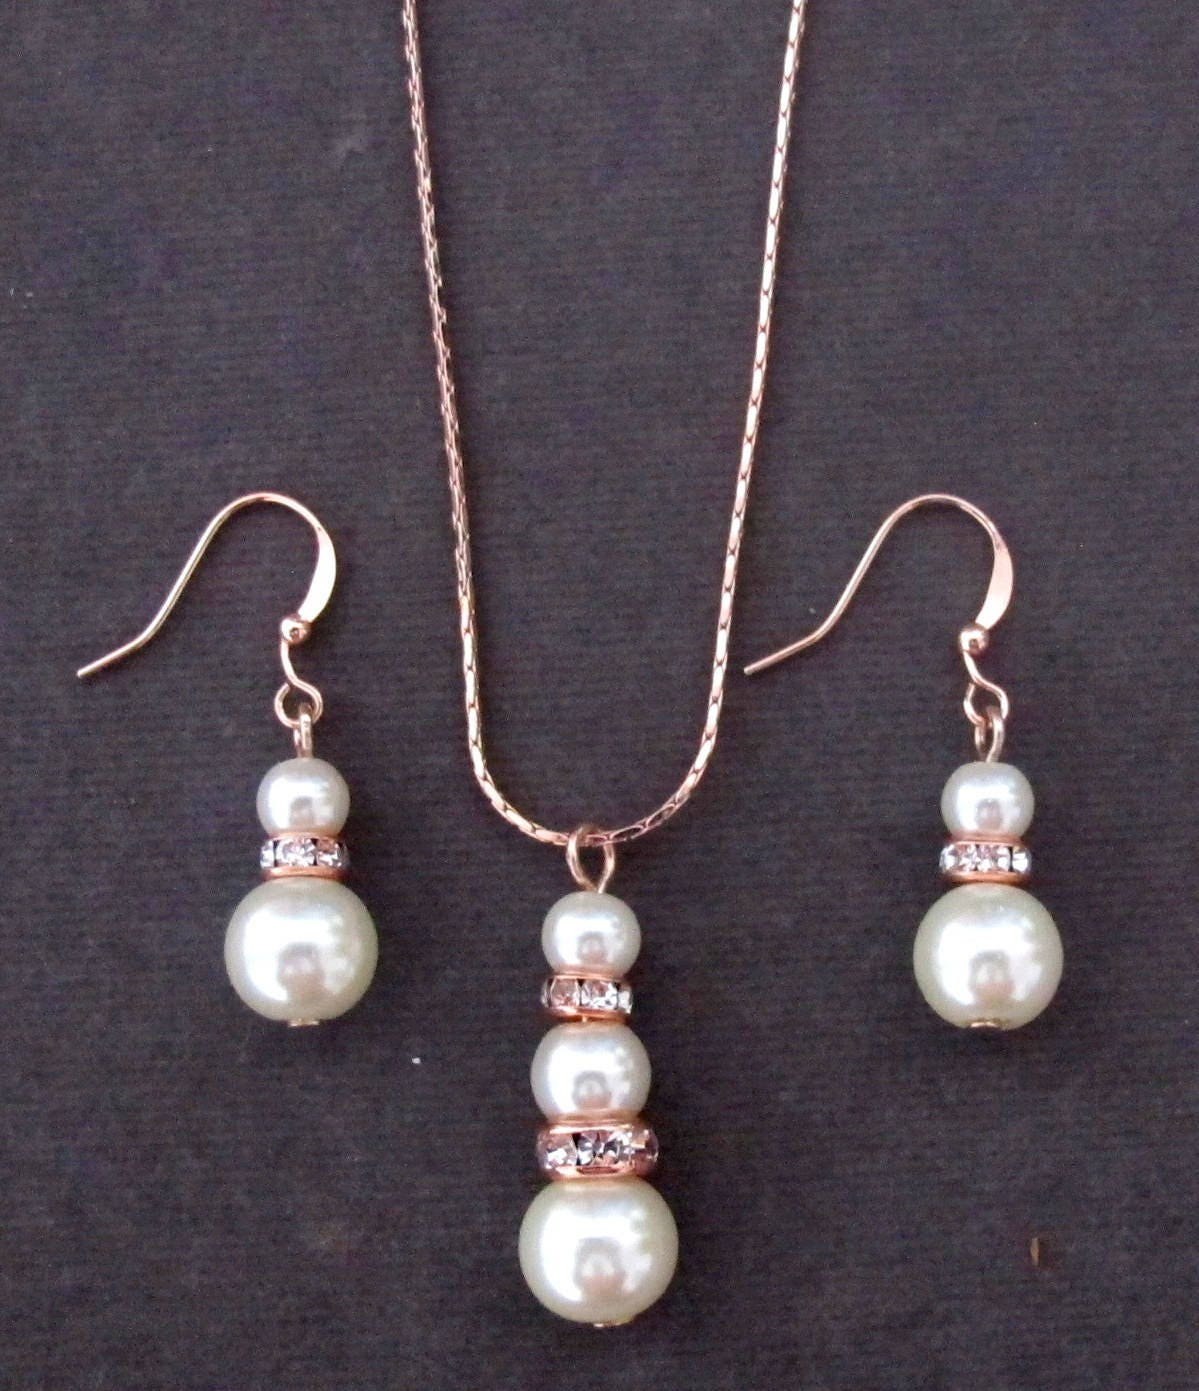 Rose Gold Pearl Jewelry SetPearl and Rose Gold Necklace SetBridal